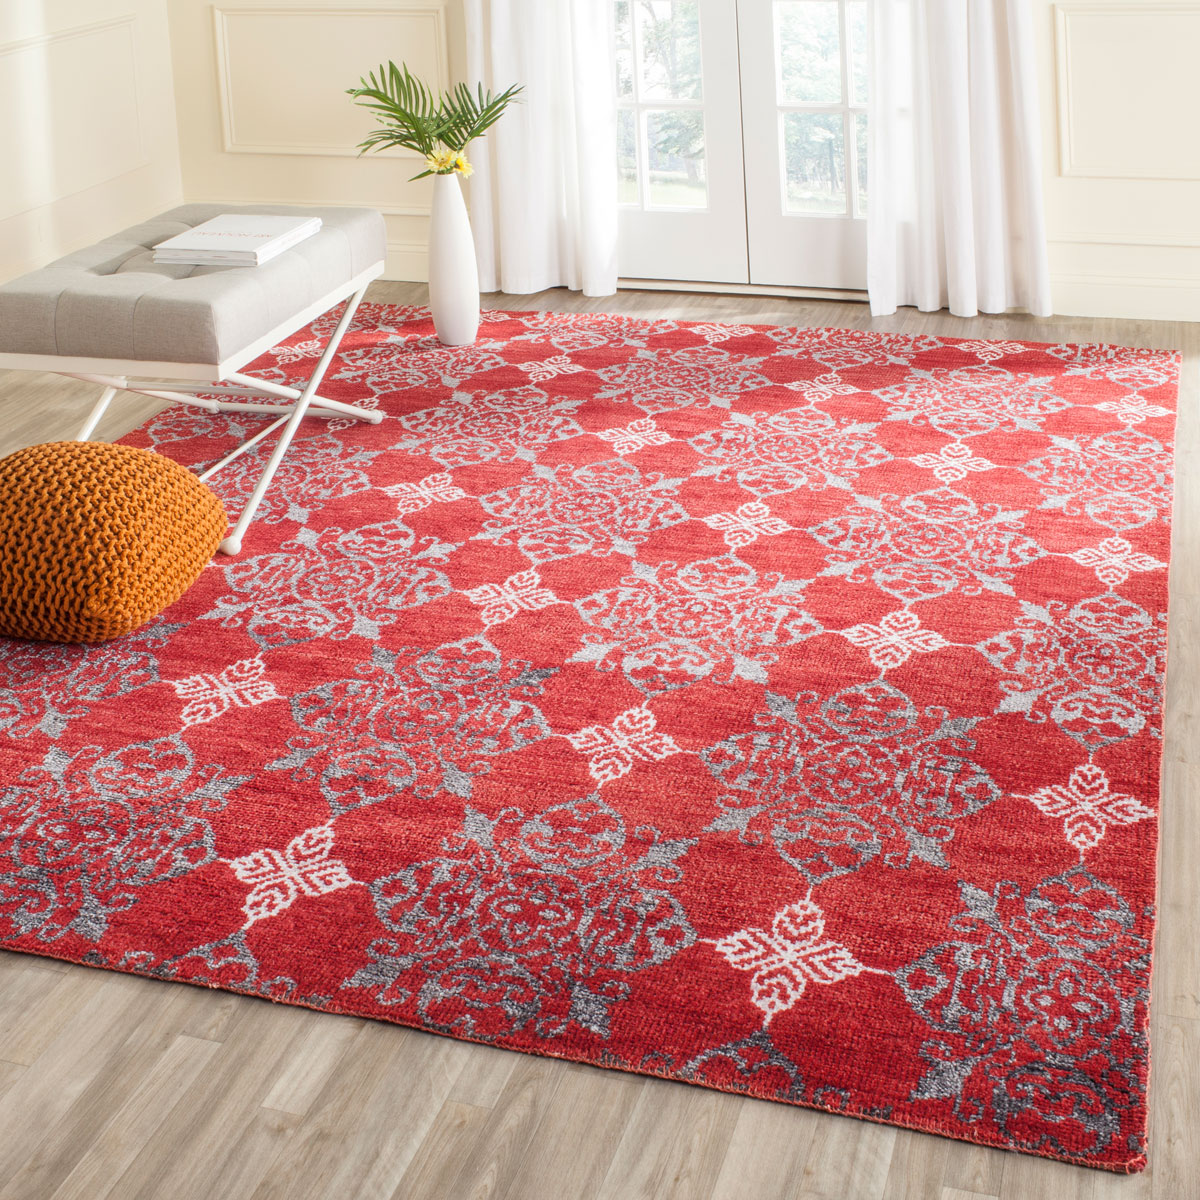 Rug Stw243a Stone Wash Area Rugs By Safavieh